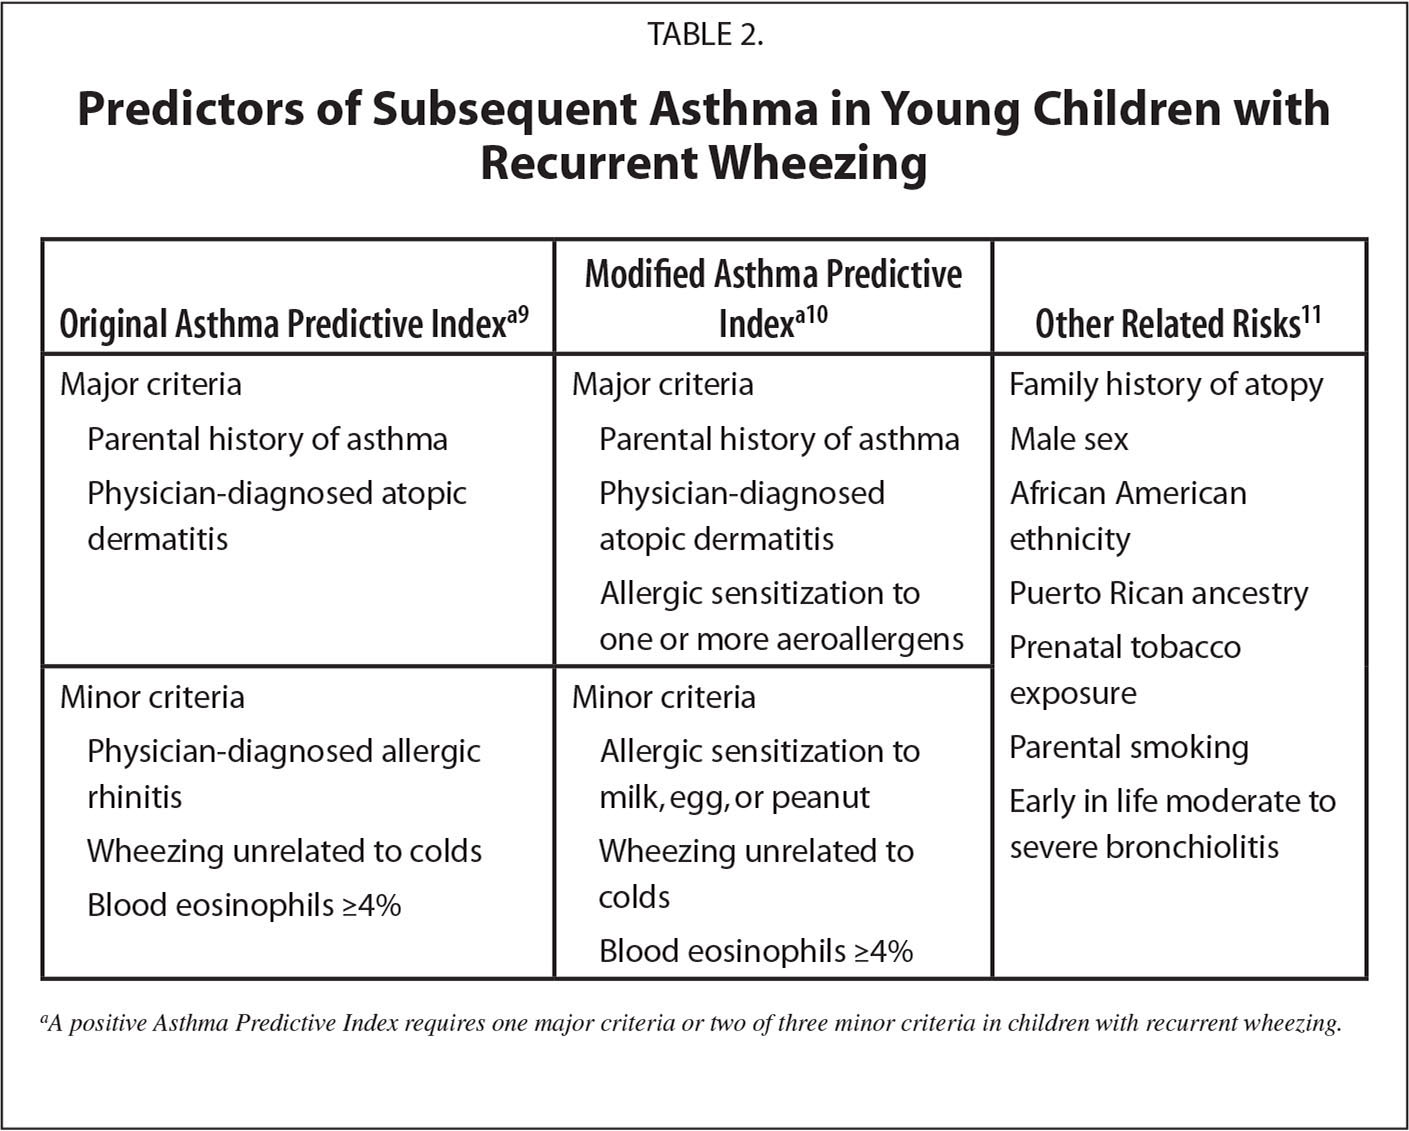 Predictors of Subsequent Asthma in Young Children with Recurrent Wheezing